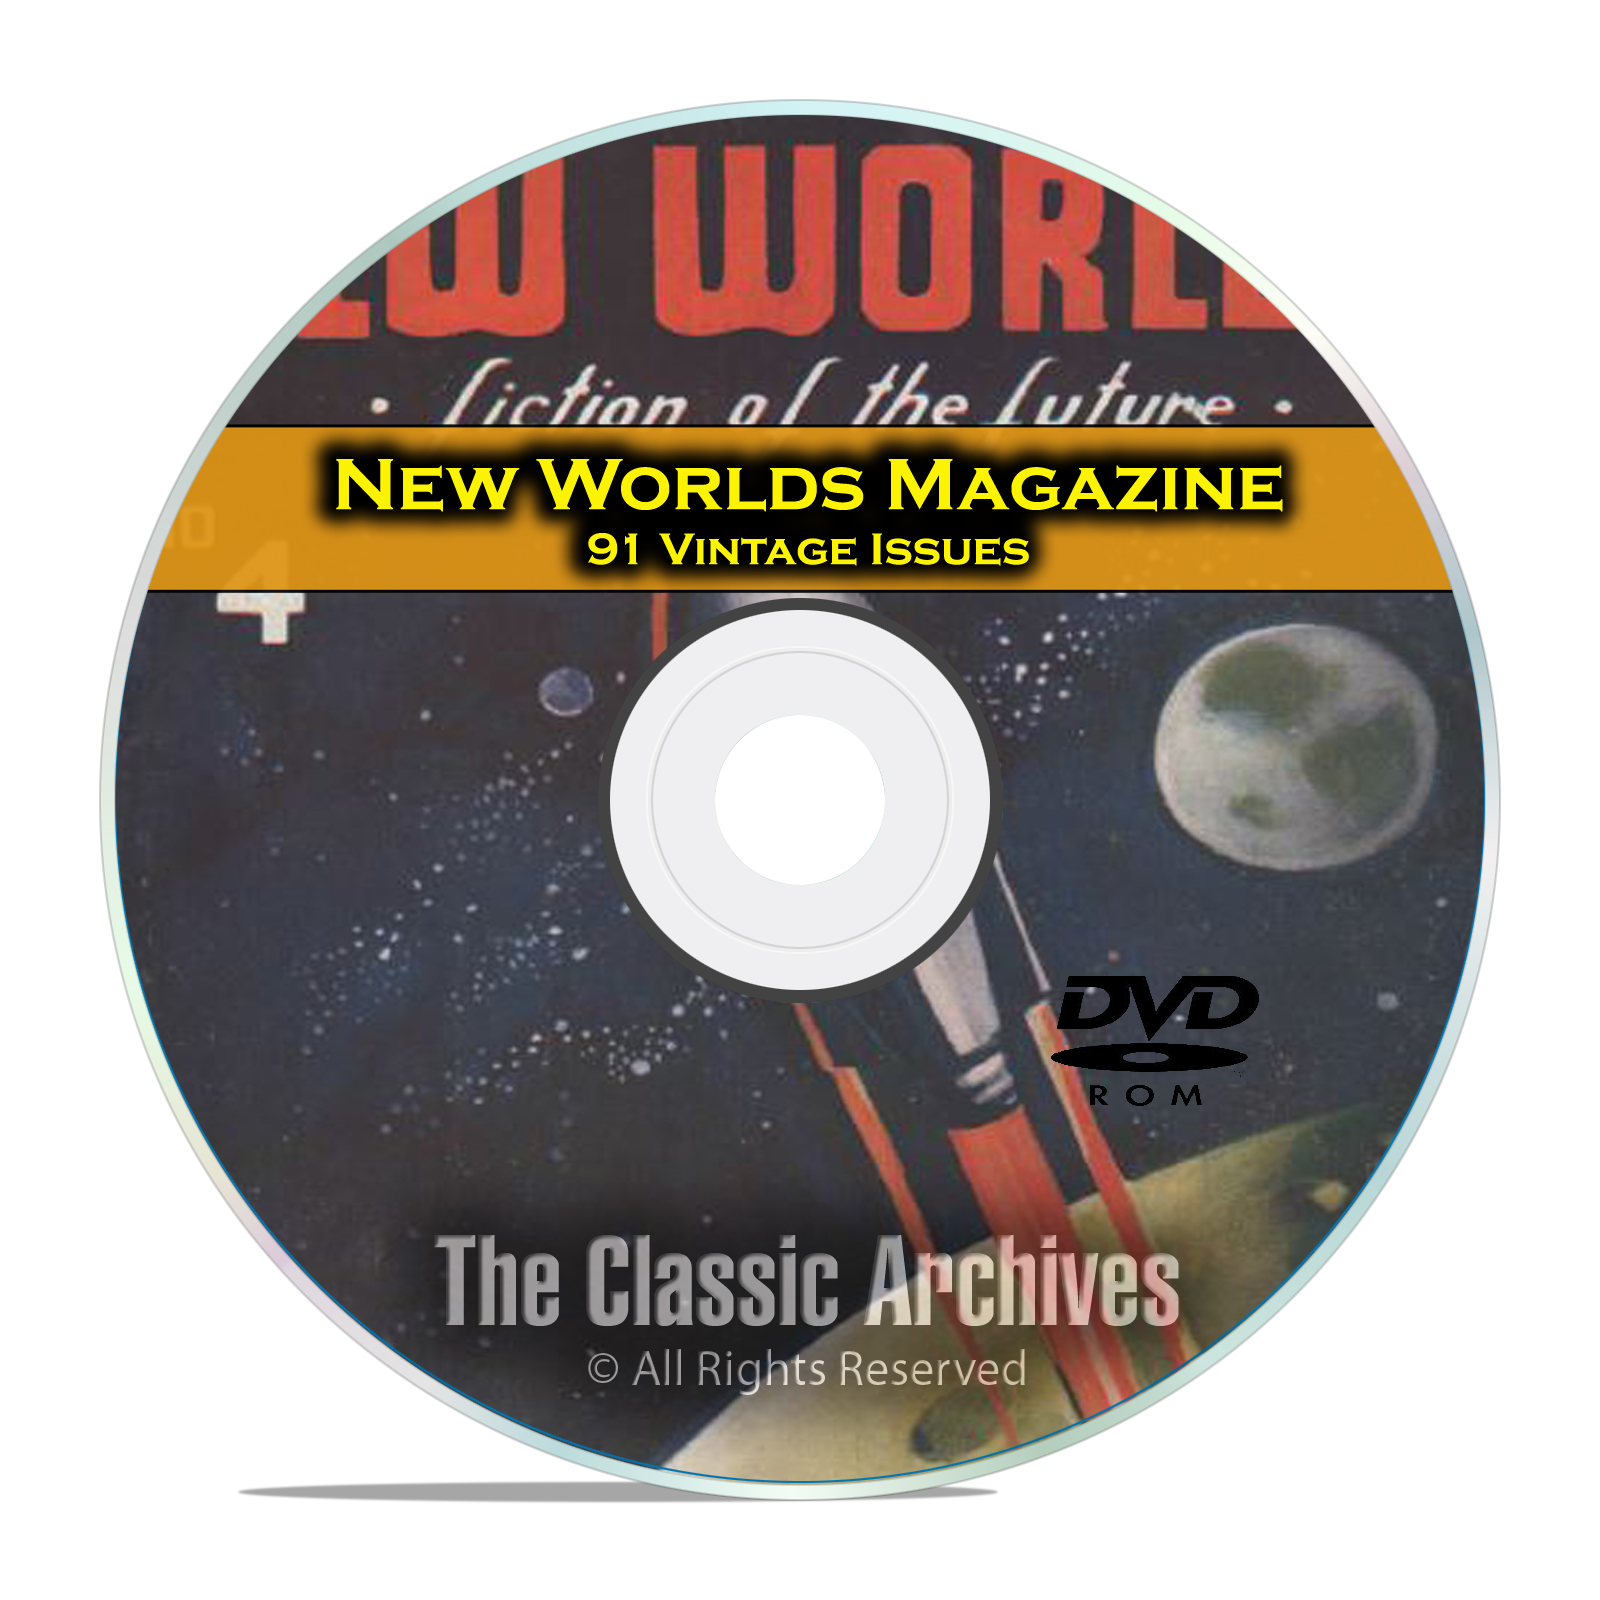 New Worlds, 91 Vintage Pulp Magazine, Golden Age Science Fiction DVD